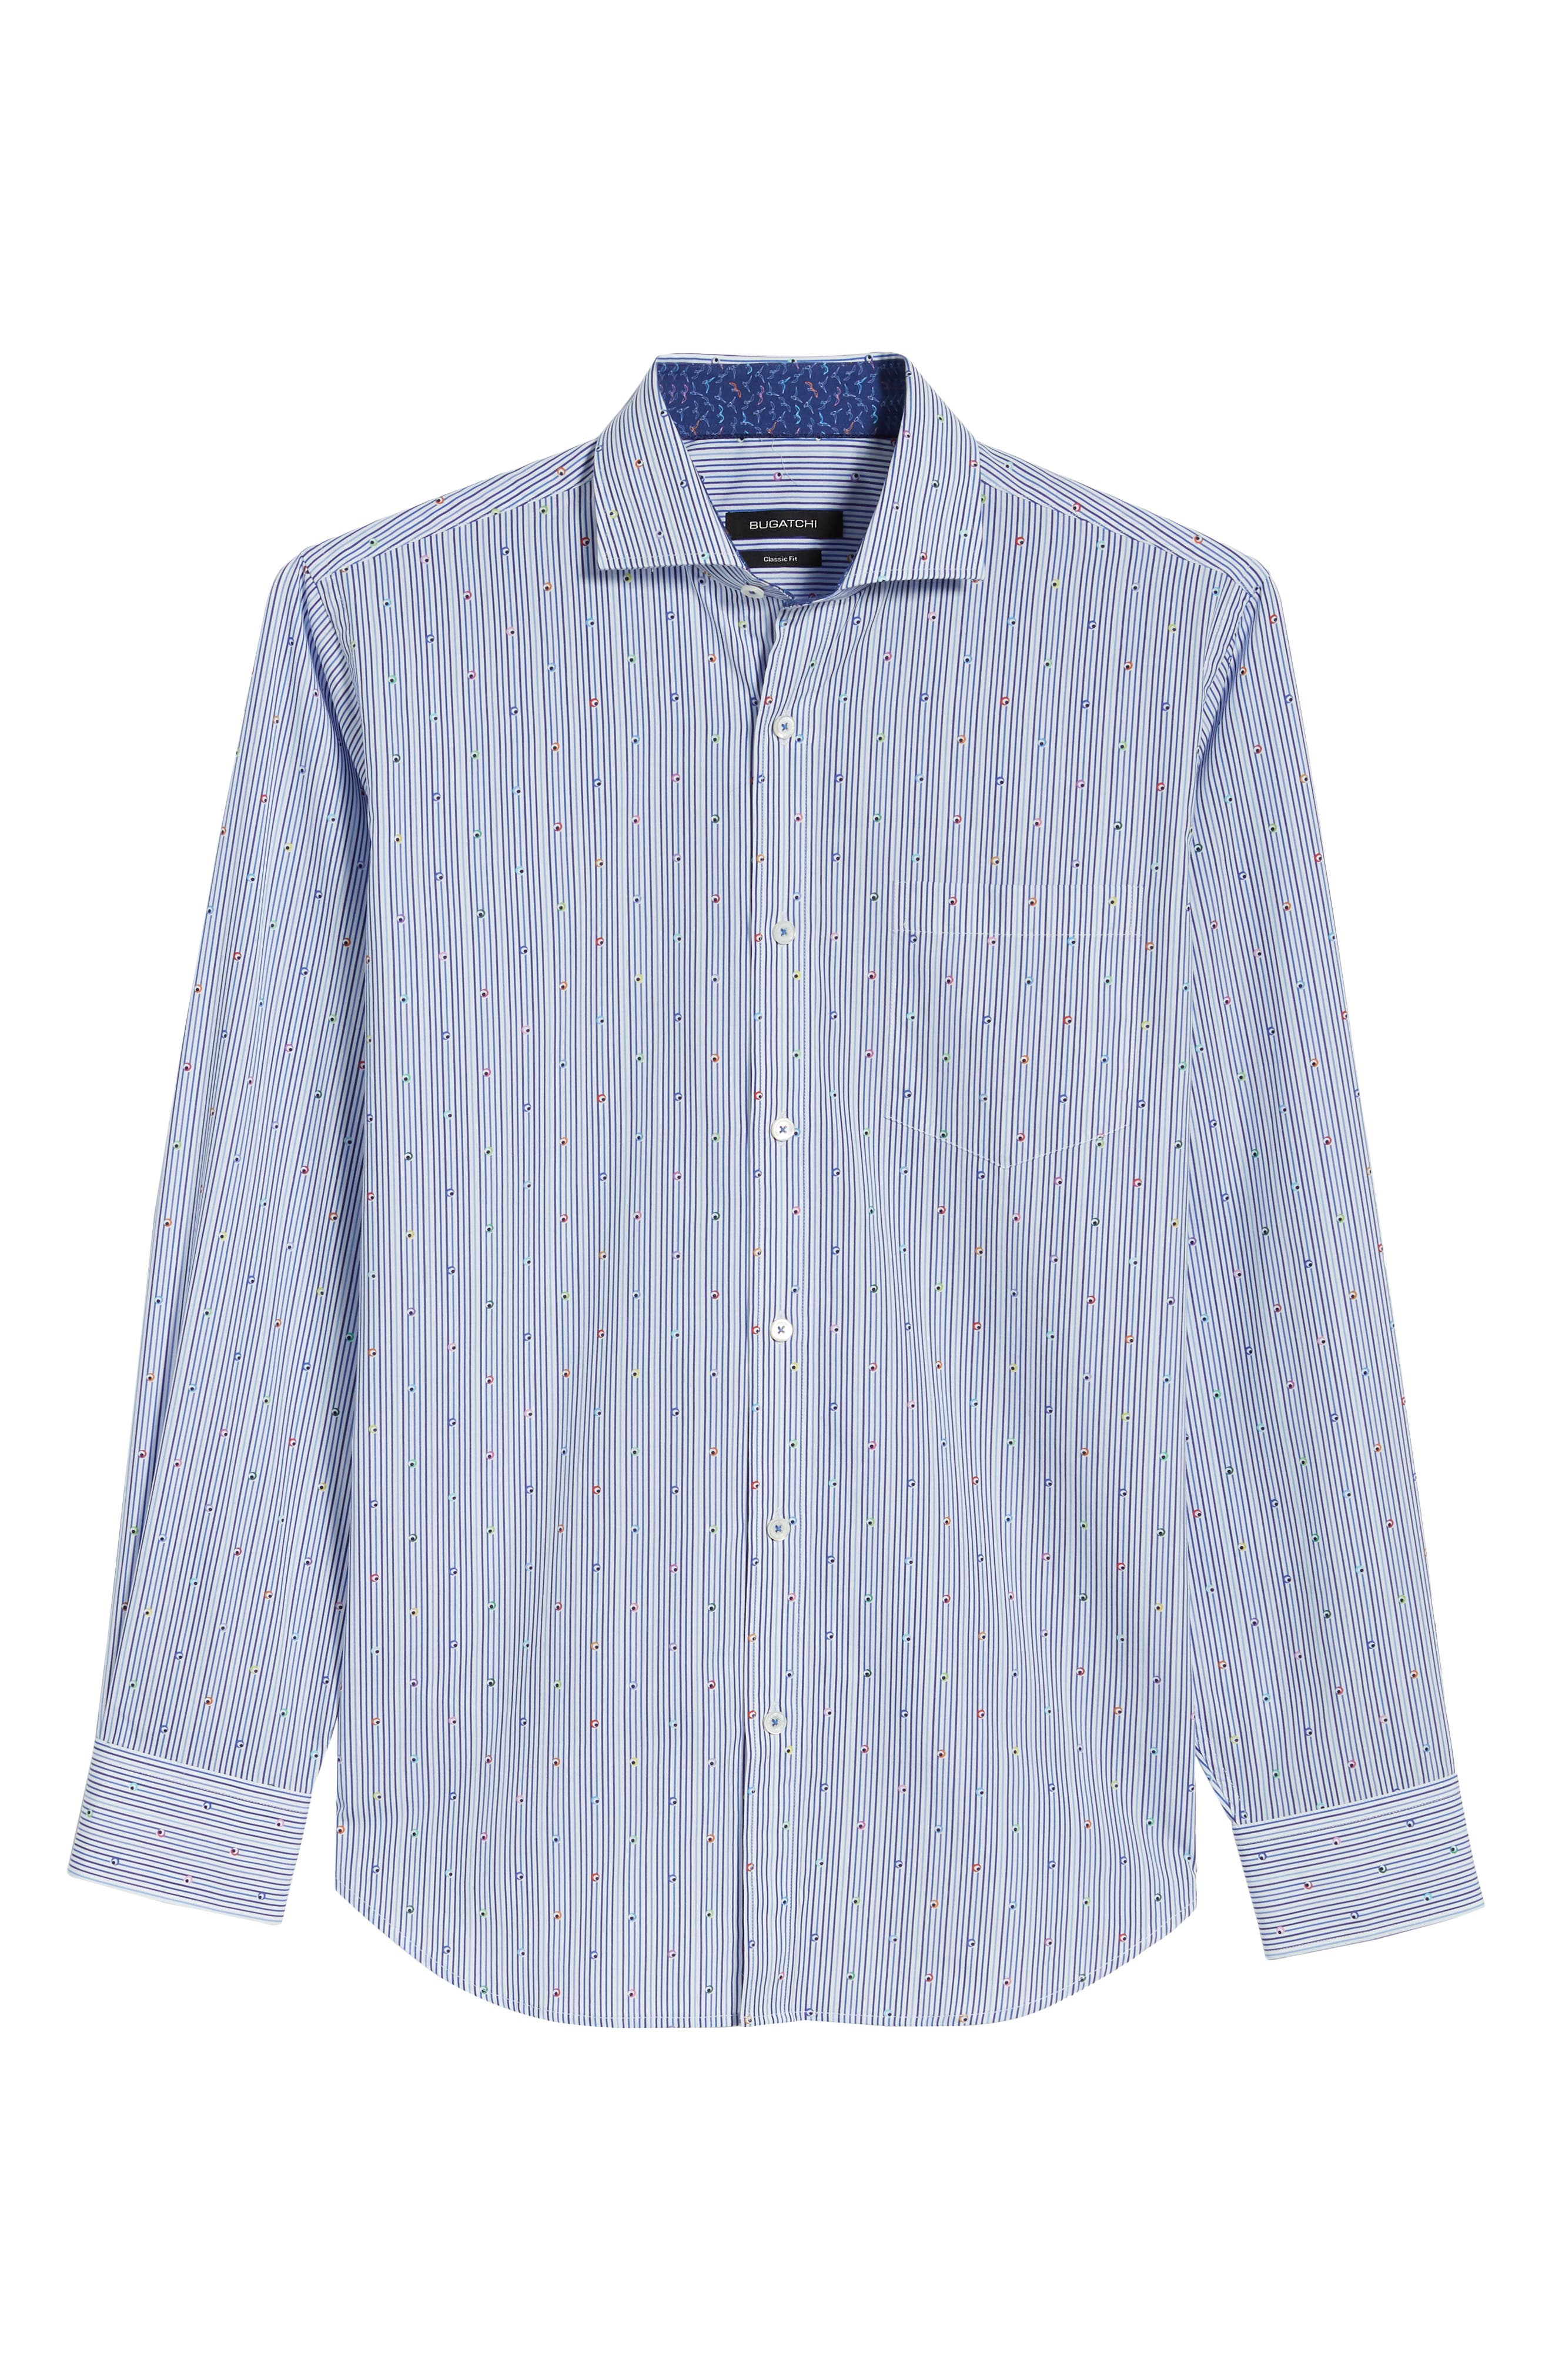 Classic Fit Stripe Sport Shirt,                             Alternate thumbnail 6, color,                             411